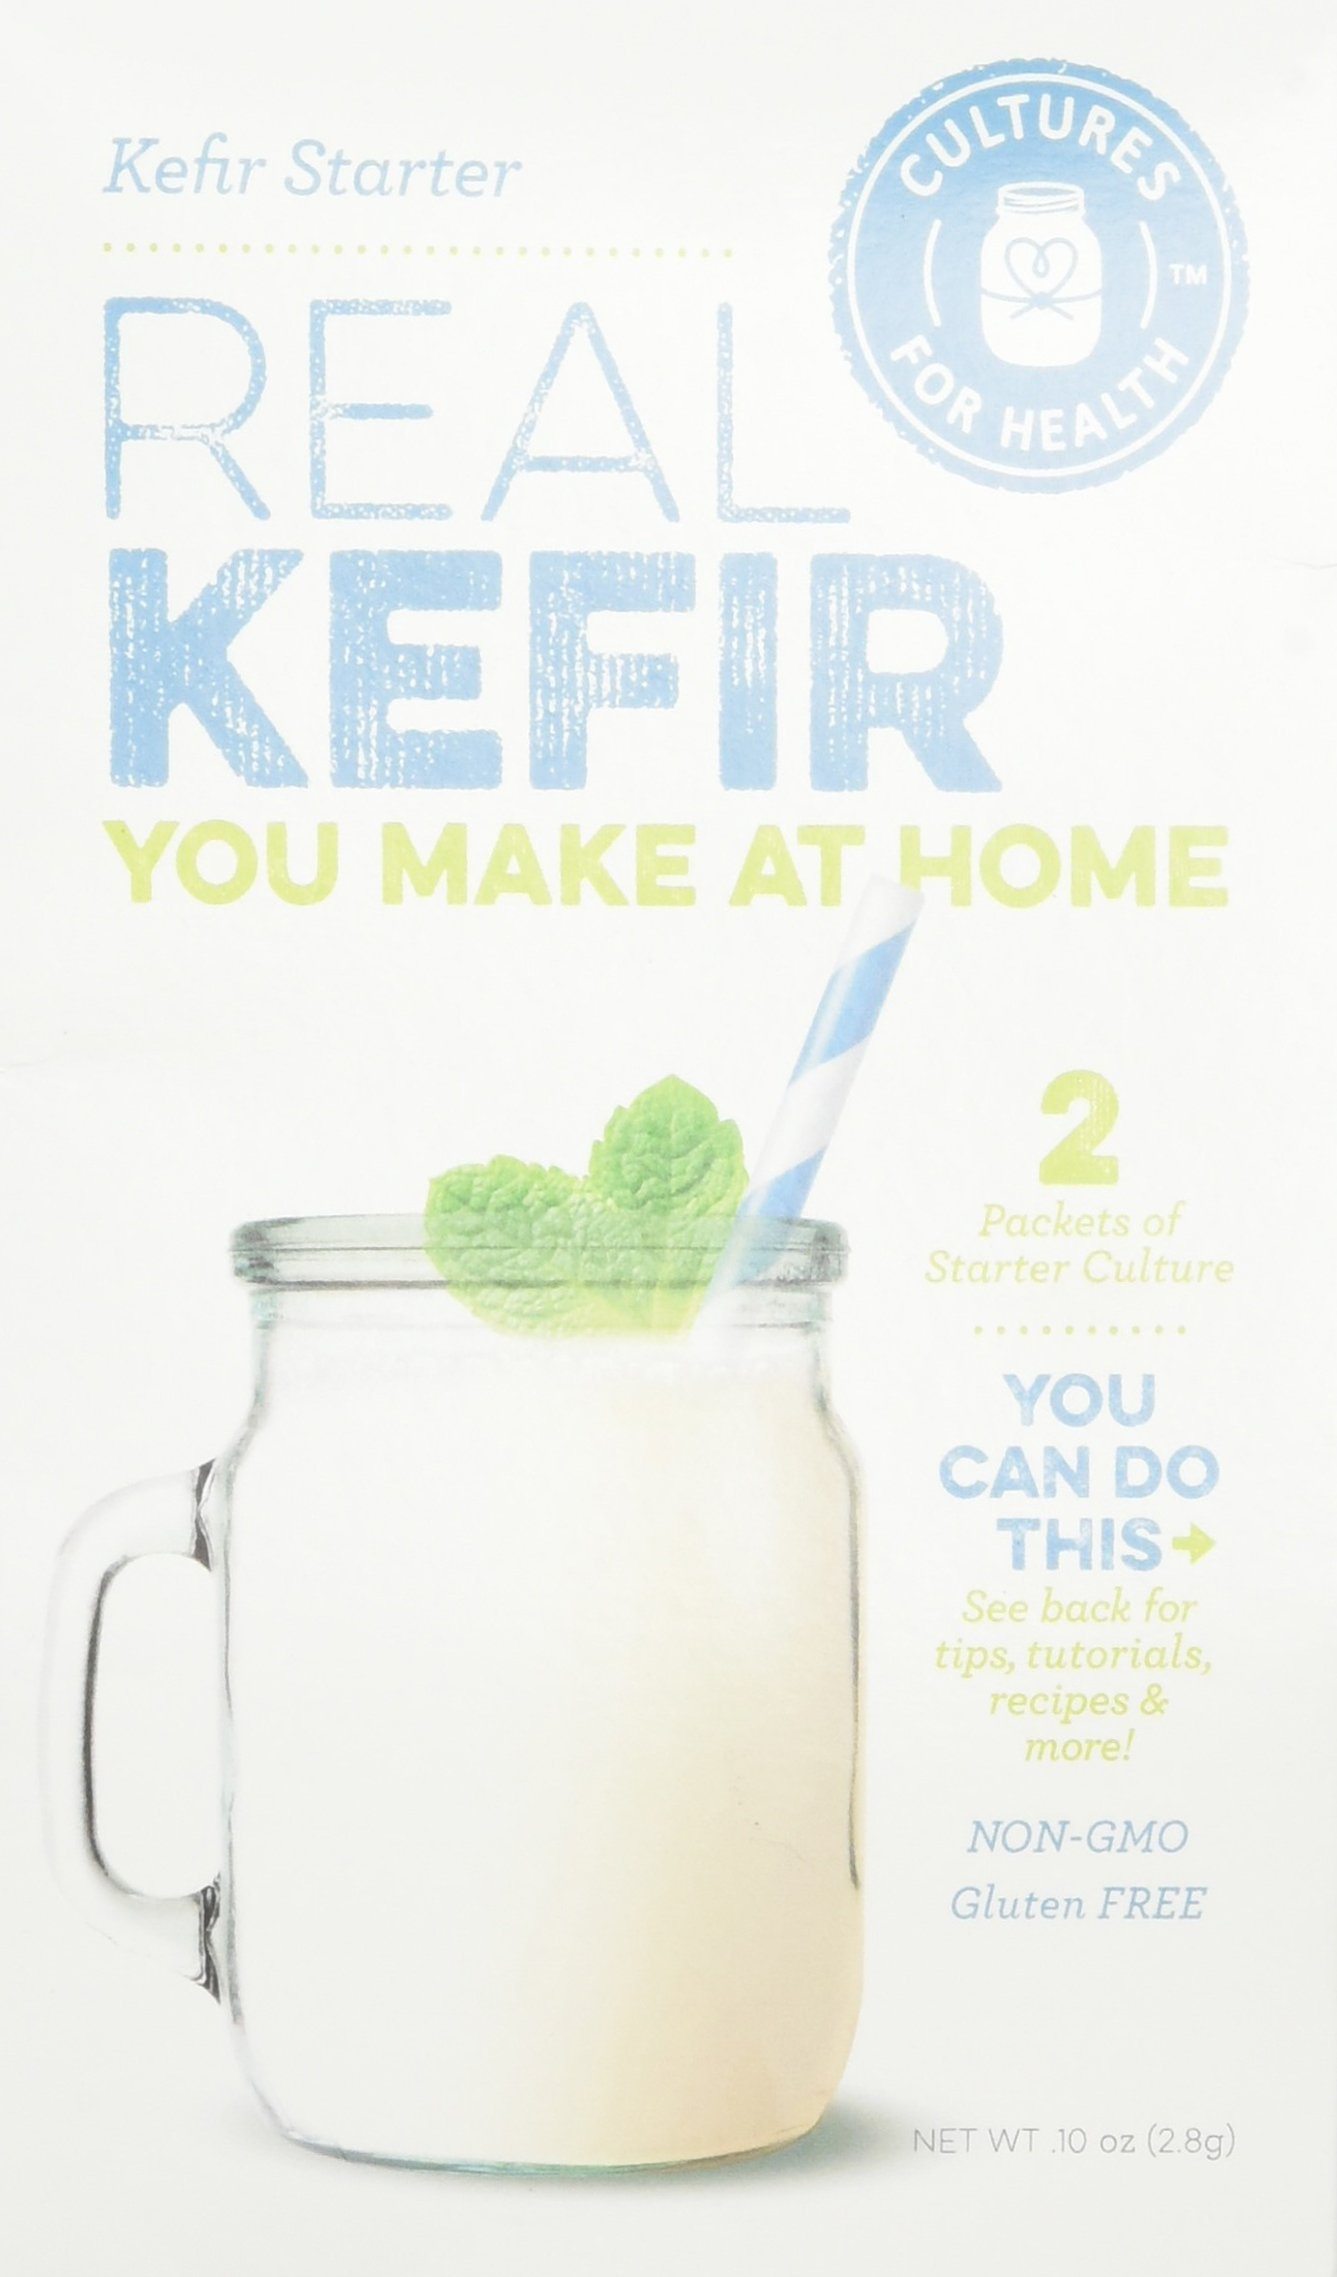 Cultures for Health Kefir Starter Culture, Freeze-Dried Powder, No Daily Maintenance, Includes 2 Packets Of Starter